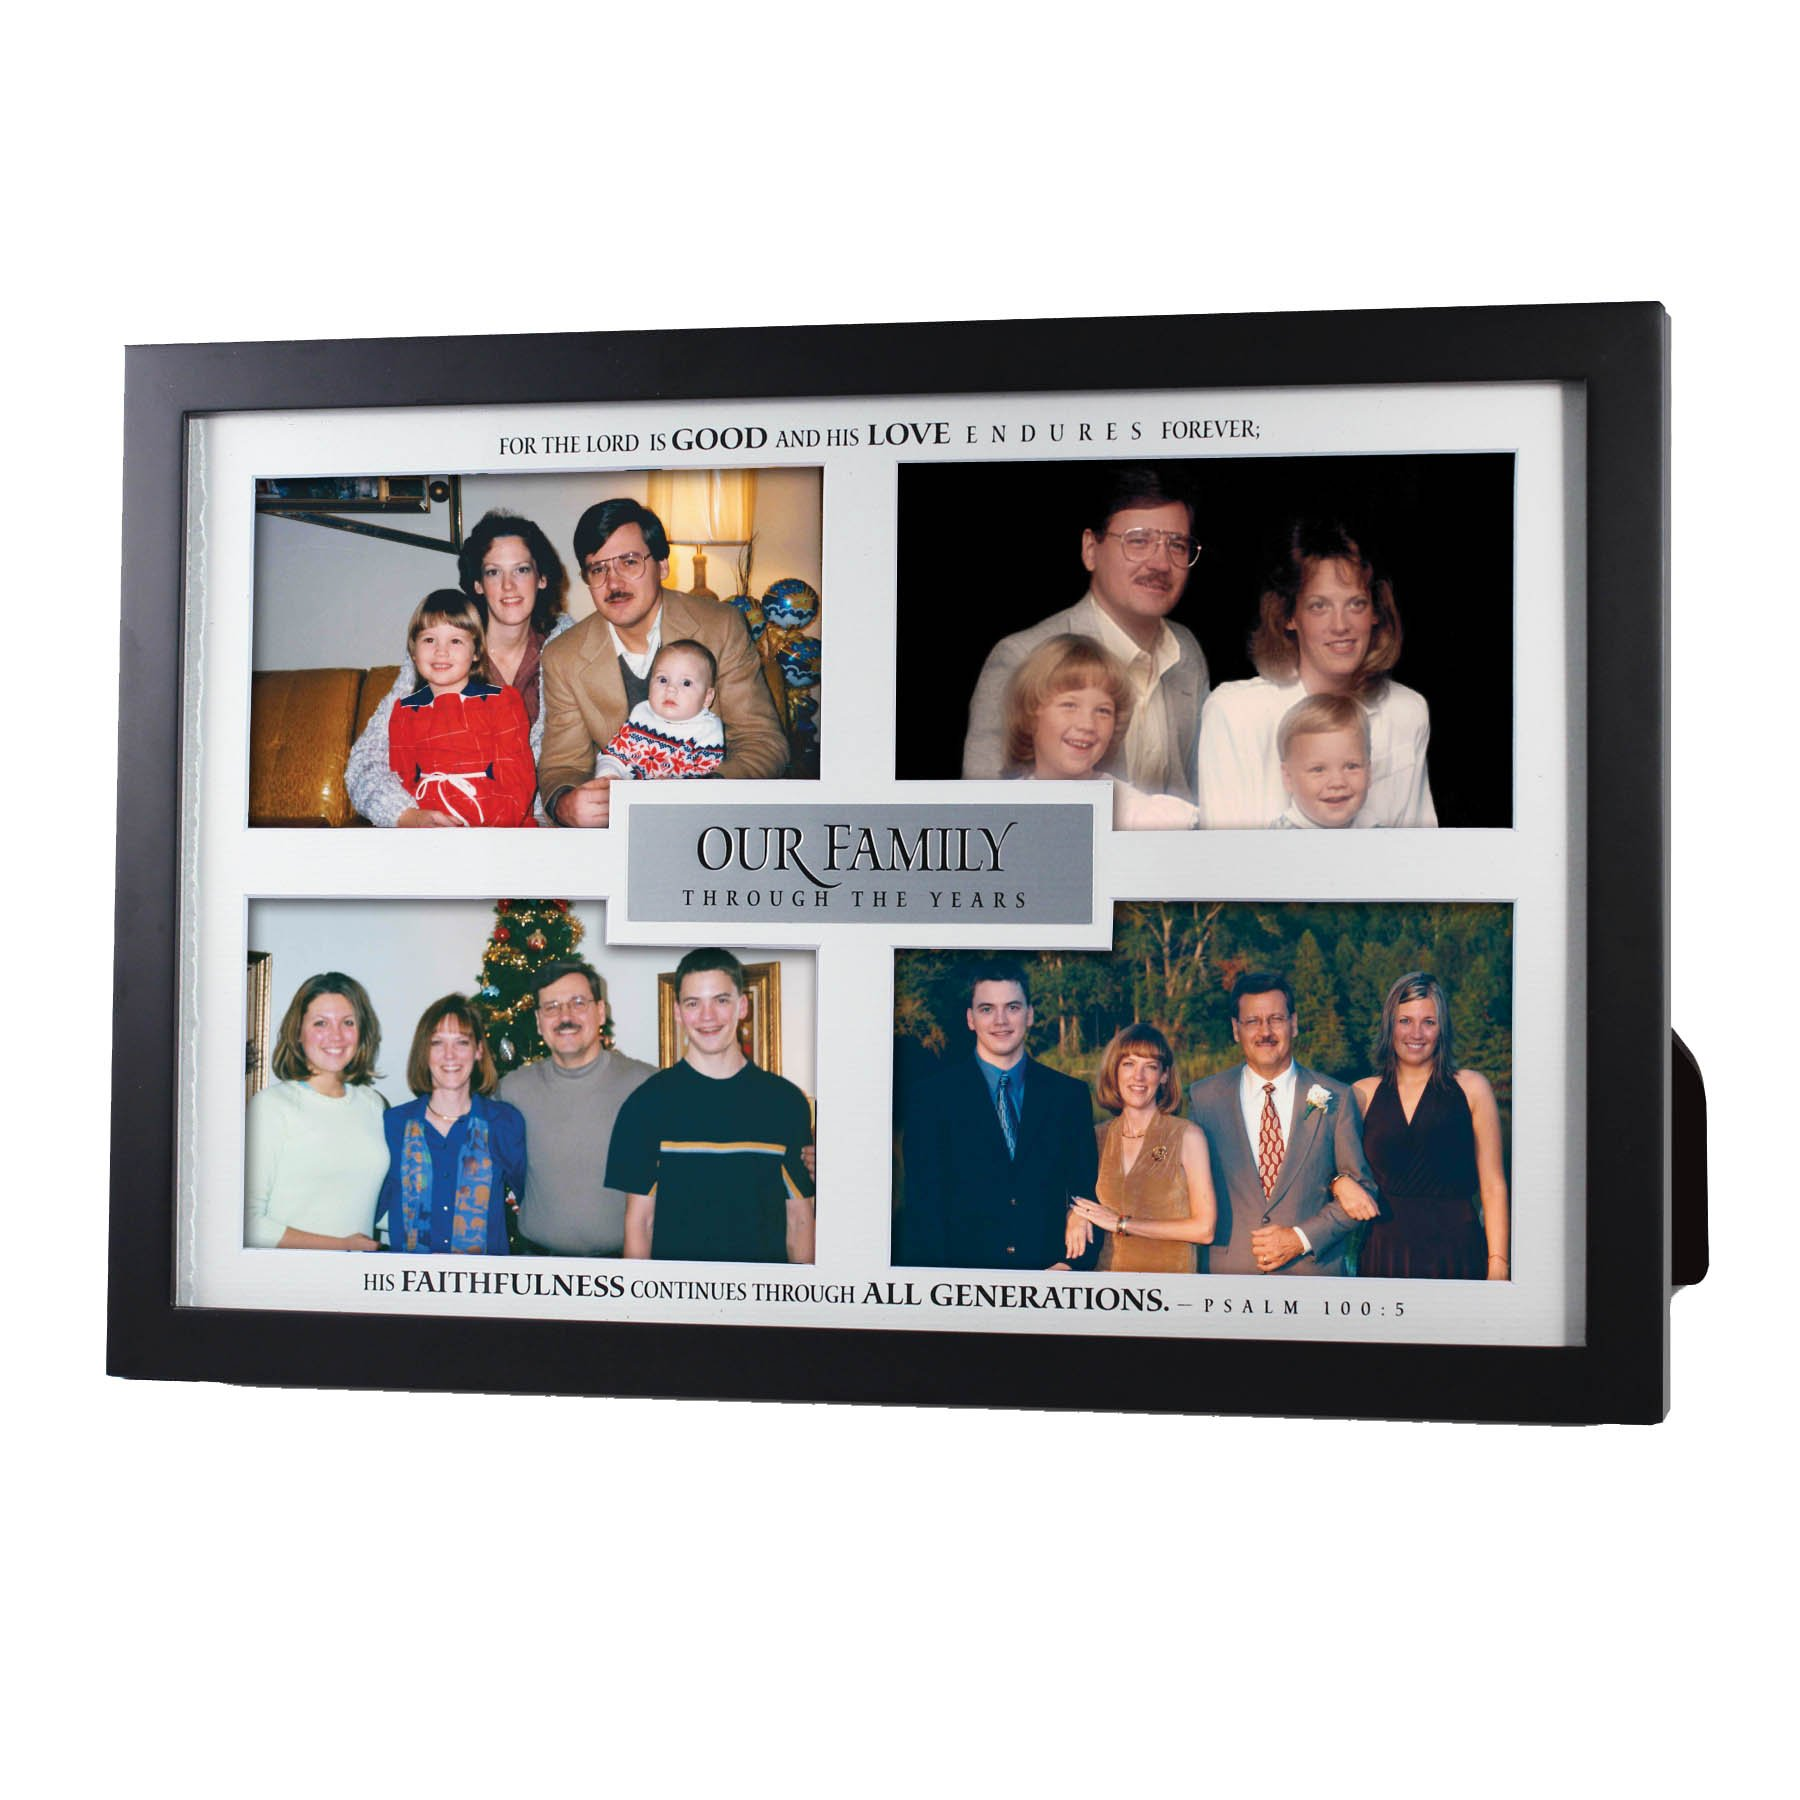 Lighthouse Christian Products Our Family Through The Years Frame Collage, 12 3/4 x 8 5/8''